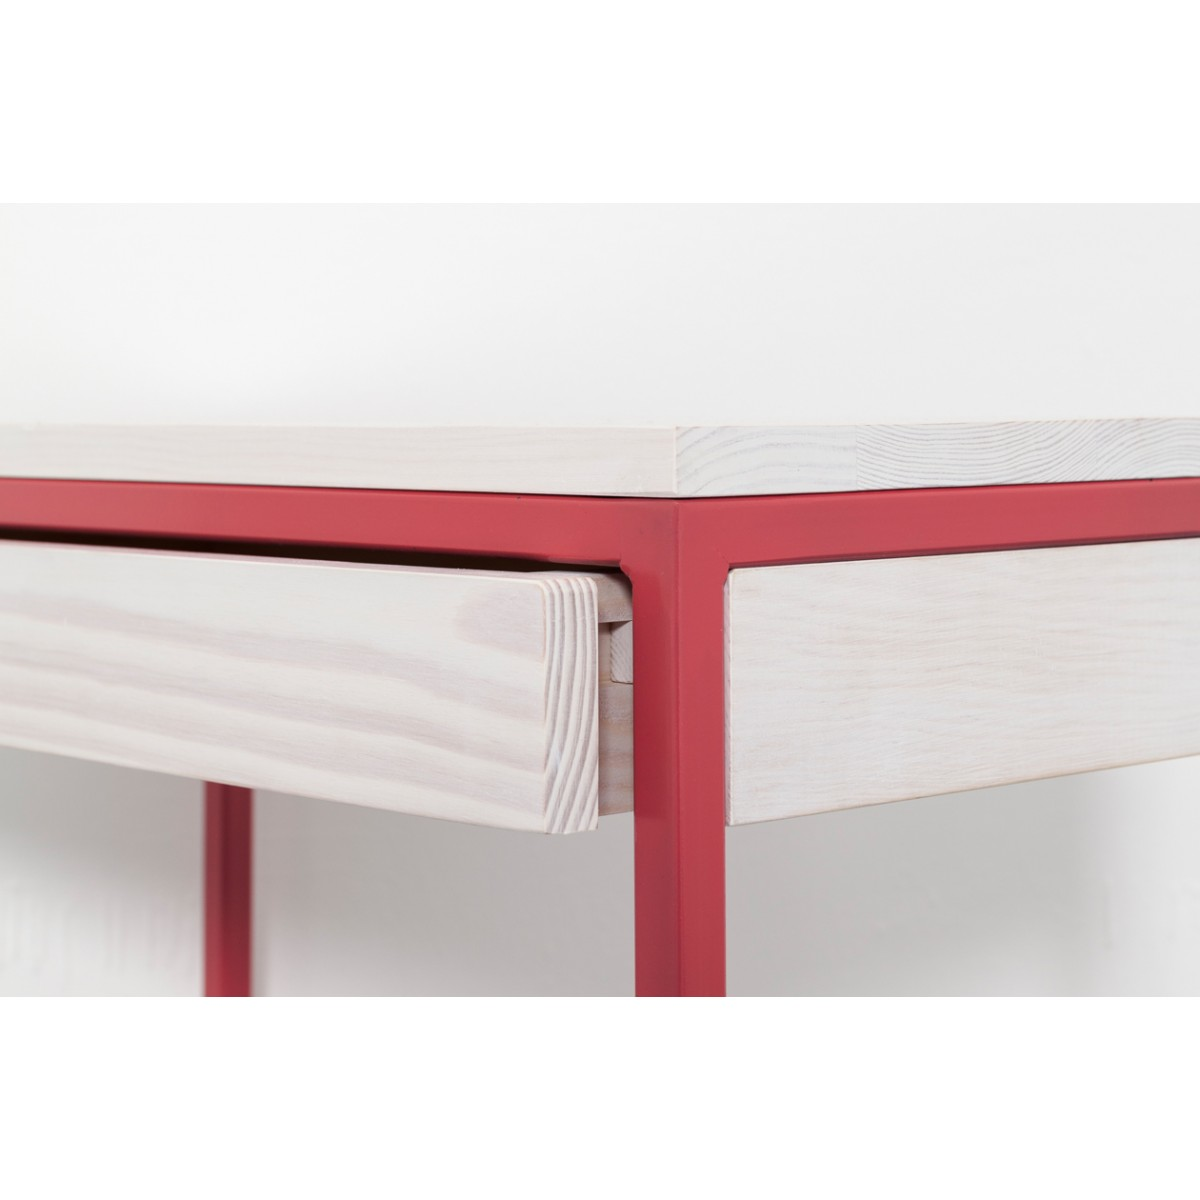 upcycling konsolentisch mit schublade in strawberry red. Black Bedroom Furniture Sets. Home Design Ideas